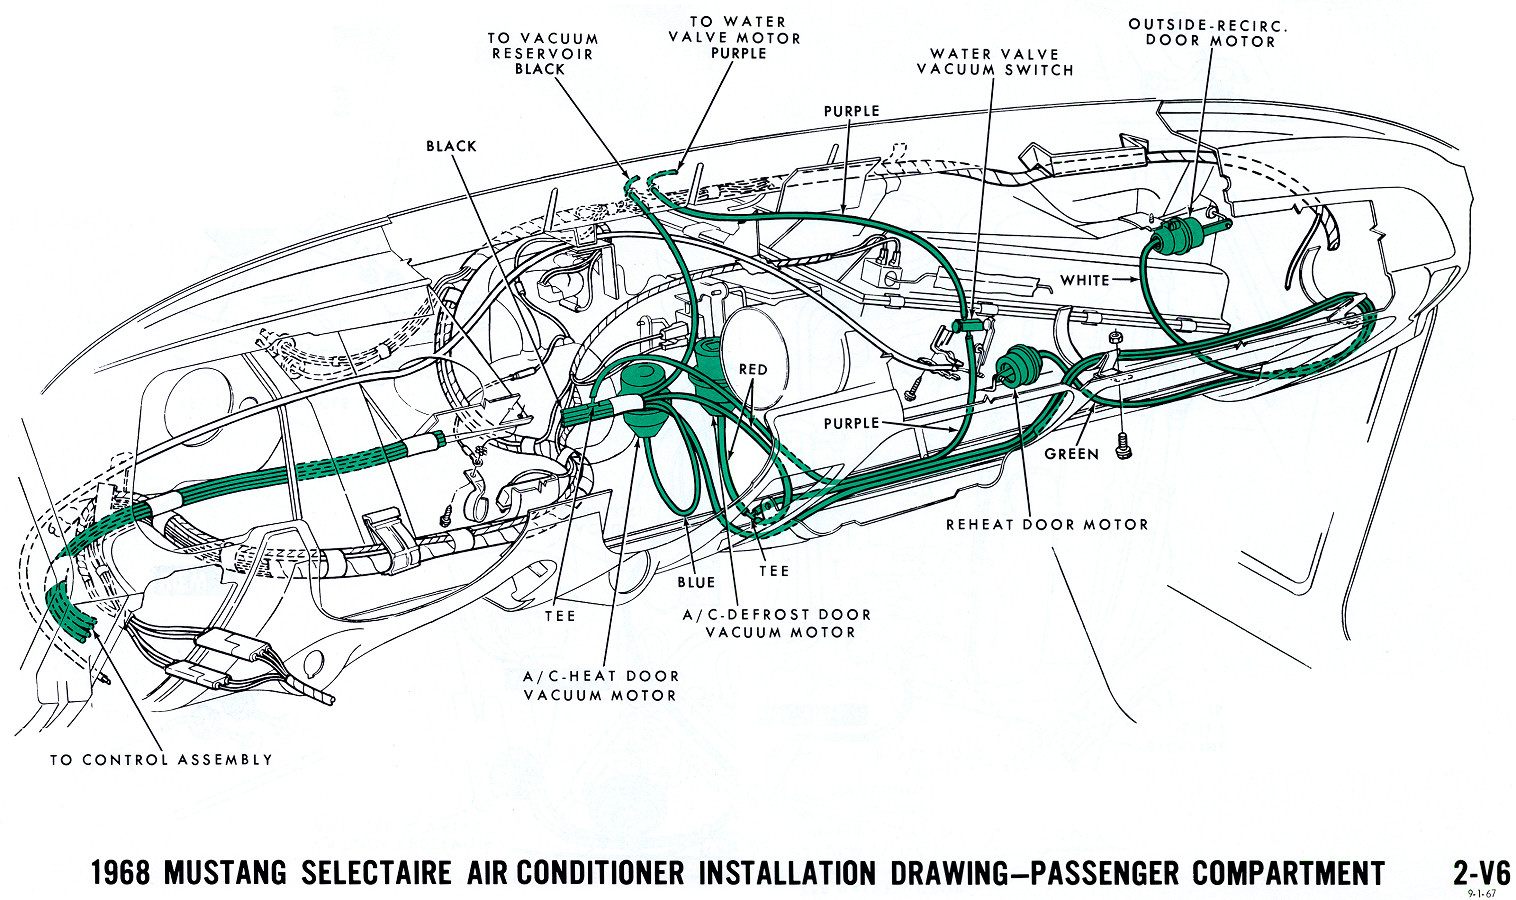 1968 mustang vacuum diagram air conditioning interior 1968 mustang wiring diagrams and vacuum schematics average joe wiring diagram for 68 cougar starter at reclaimingppi.co